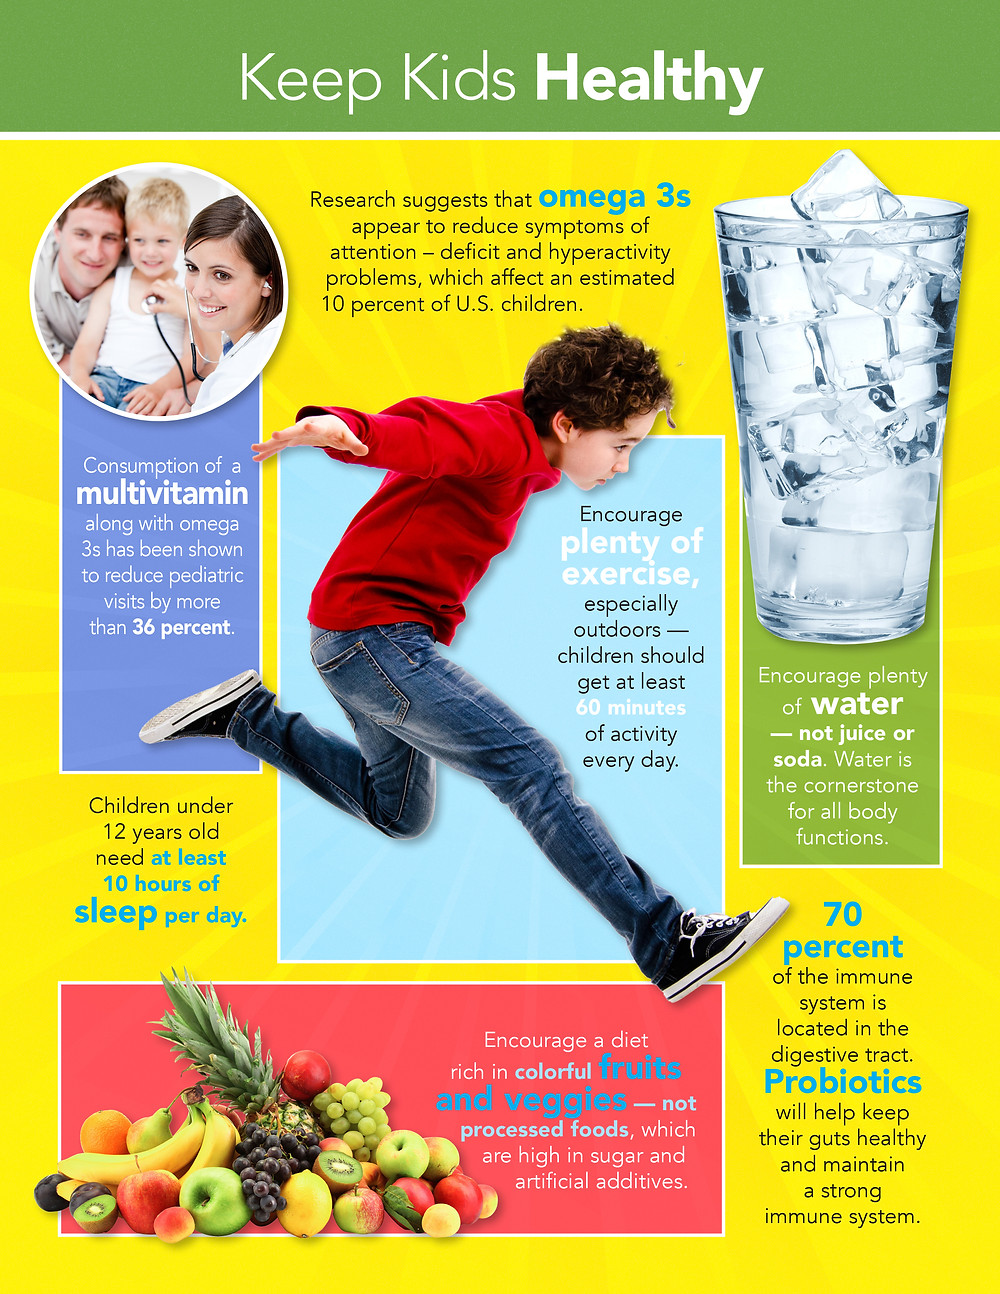 Are you tired of your kids always being sick? Fevers, coughs, colds, the flu?... What can you do to make it all better?  Here are some options start with the gut then work your way out, 80% of the immune system starts in our gut.  I would suggest starting on a high quality probiotic and aloe juice to help boos the immune system and fight off bugs.  A great omega 3s fish oils, multivitamins, and antioxidants such as DNA Miracles OPC-3 is a great way to keep your little one healthy and happy. Is it really worth missing work? Seeing your kids sick all the time and miserable? Why not invest in your kids, so that they can live a healthy lifestyle. Be proactive, be healthy, enjoy life. #healthykids #prevention